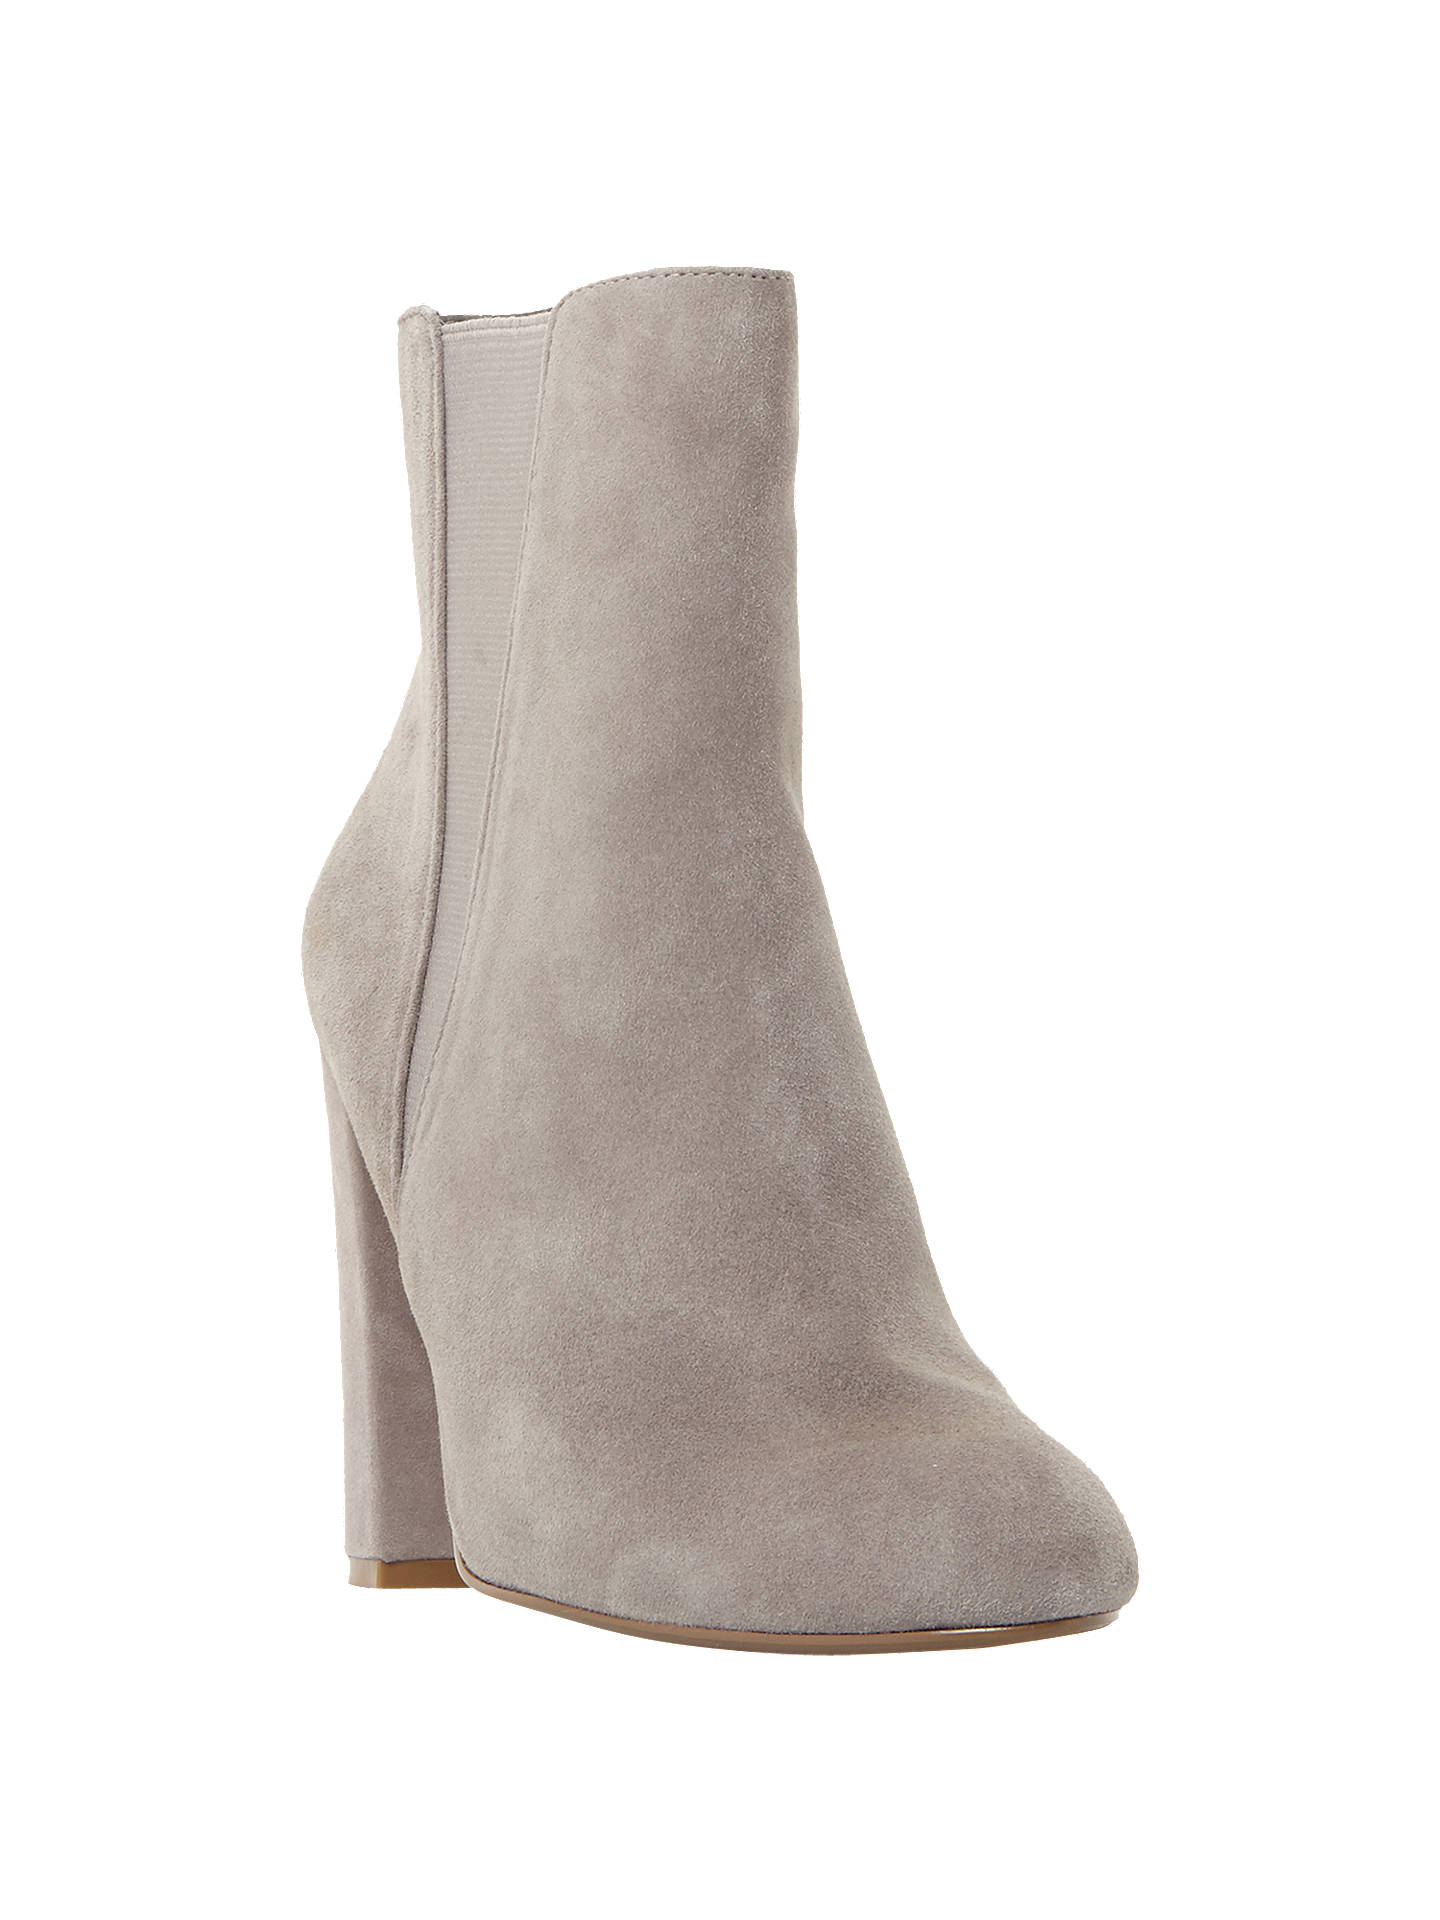 227559149f44f Buy Steve Madden Effect Block Heeled Ankle Boots, Grey Suede, 3 Online at  johnlewis ...